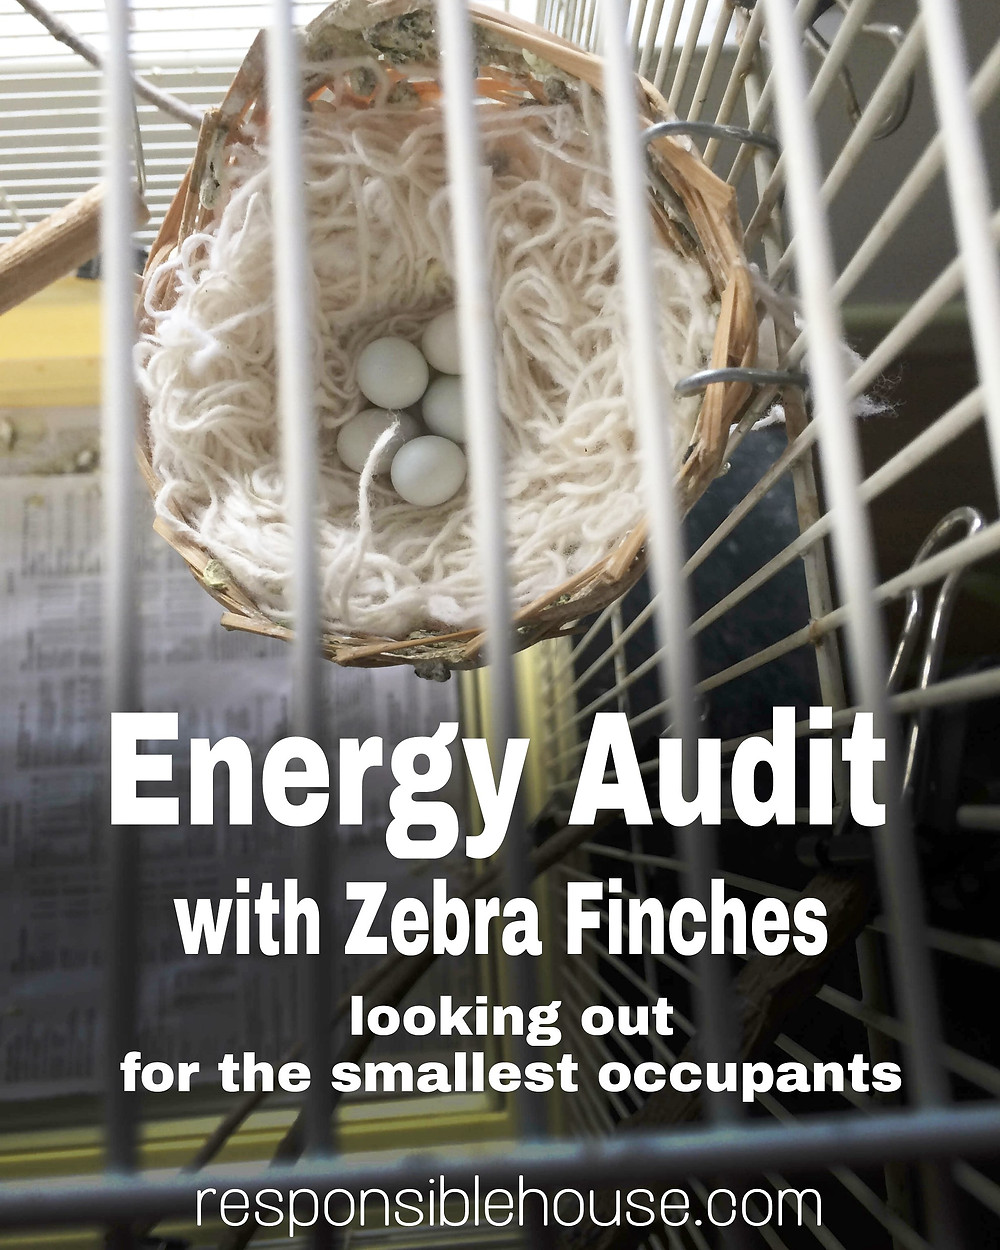 Energy Audit with Zebra Finches